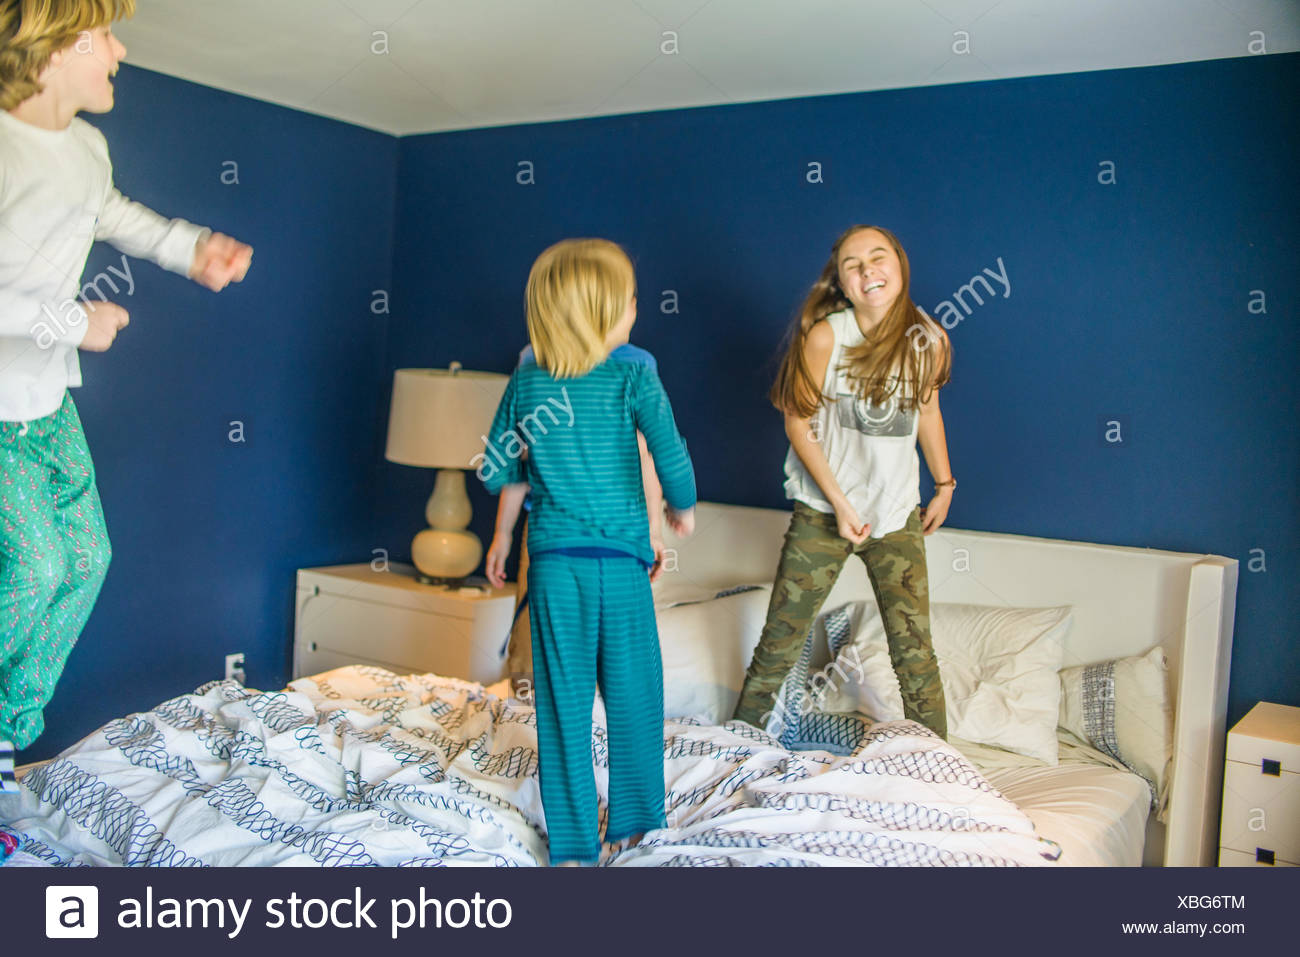 Teenage girl jumping on bed with younger brothers - Stock Image